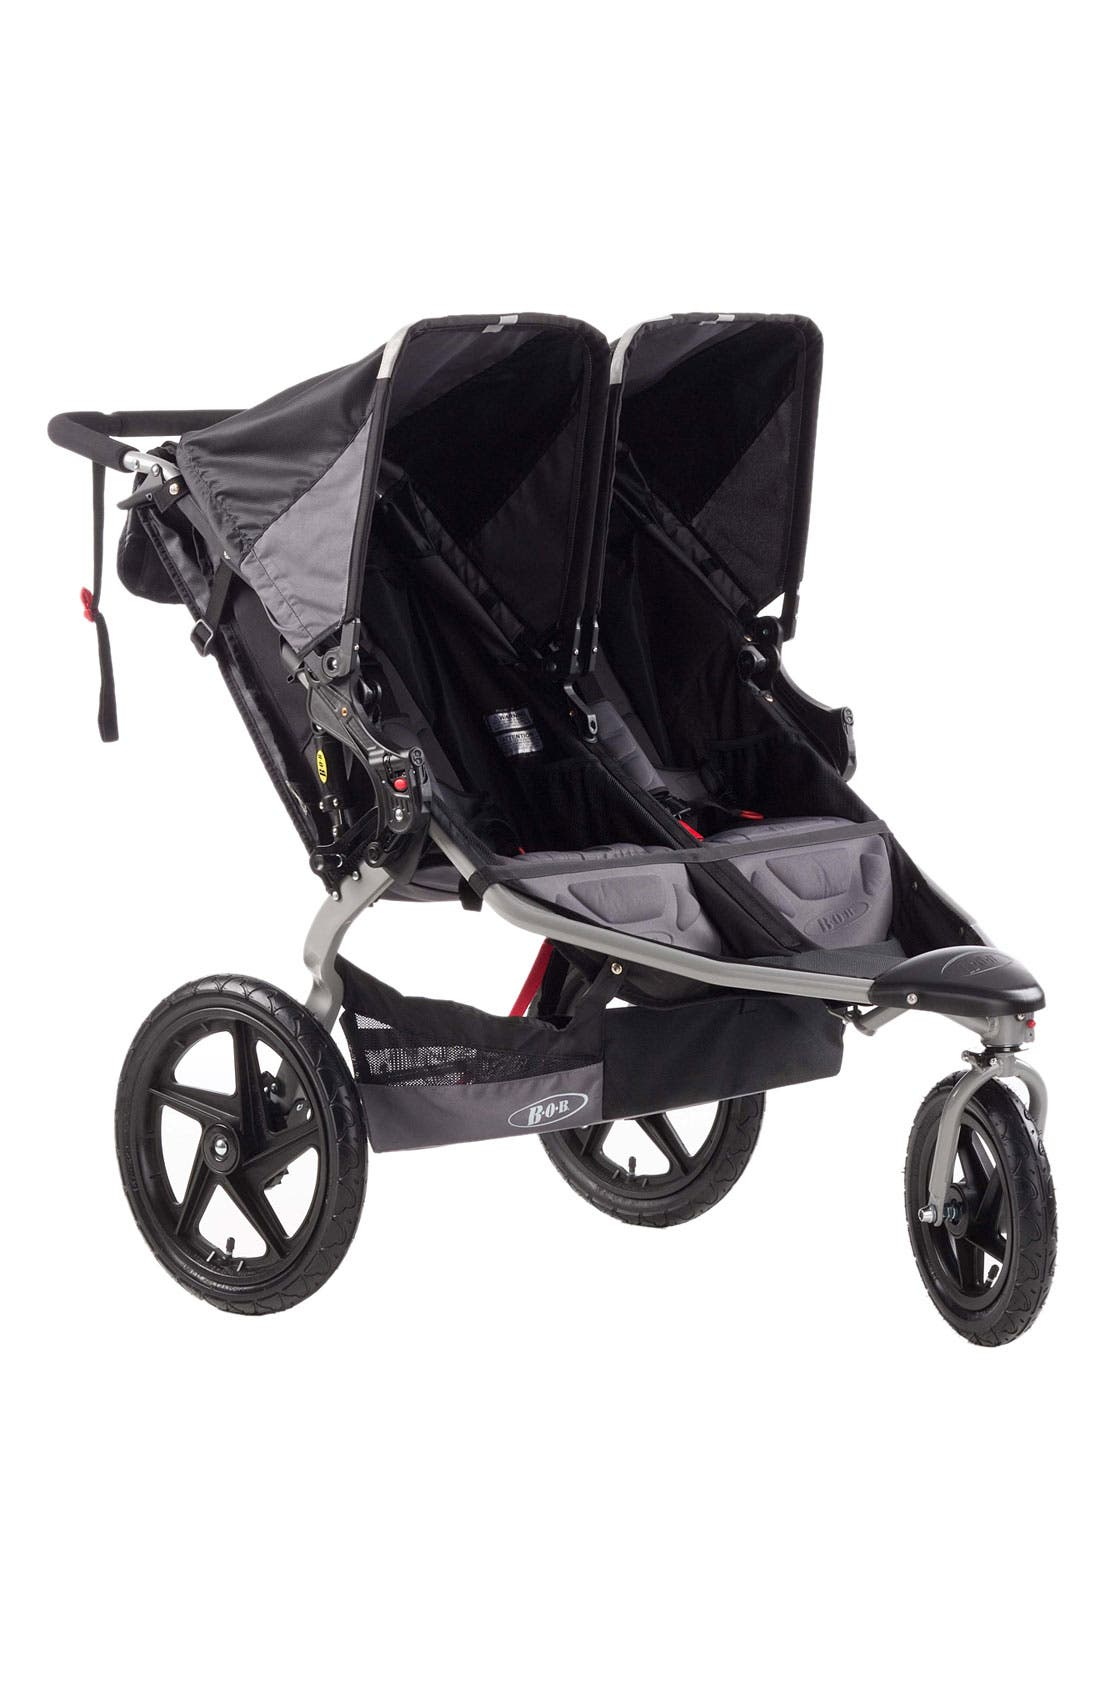 Alternate Image 1 Selected - BOB 'Revolution Duallie SE' Stroller